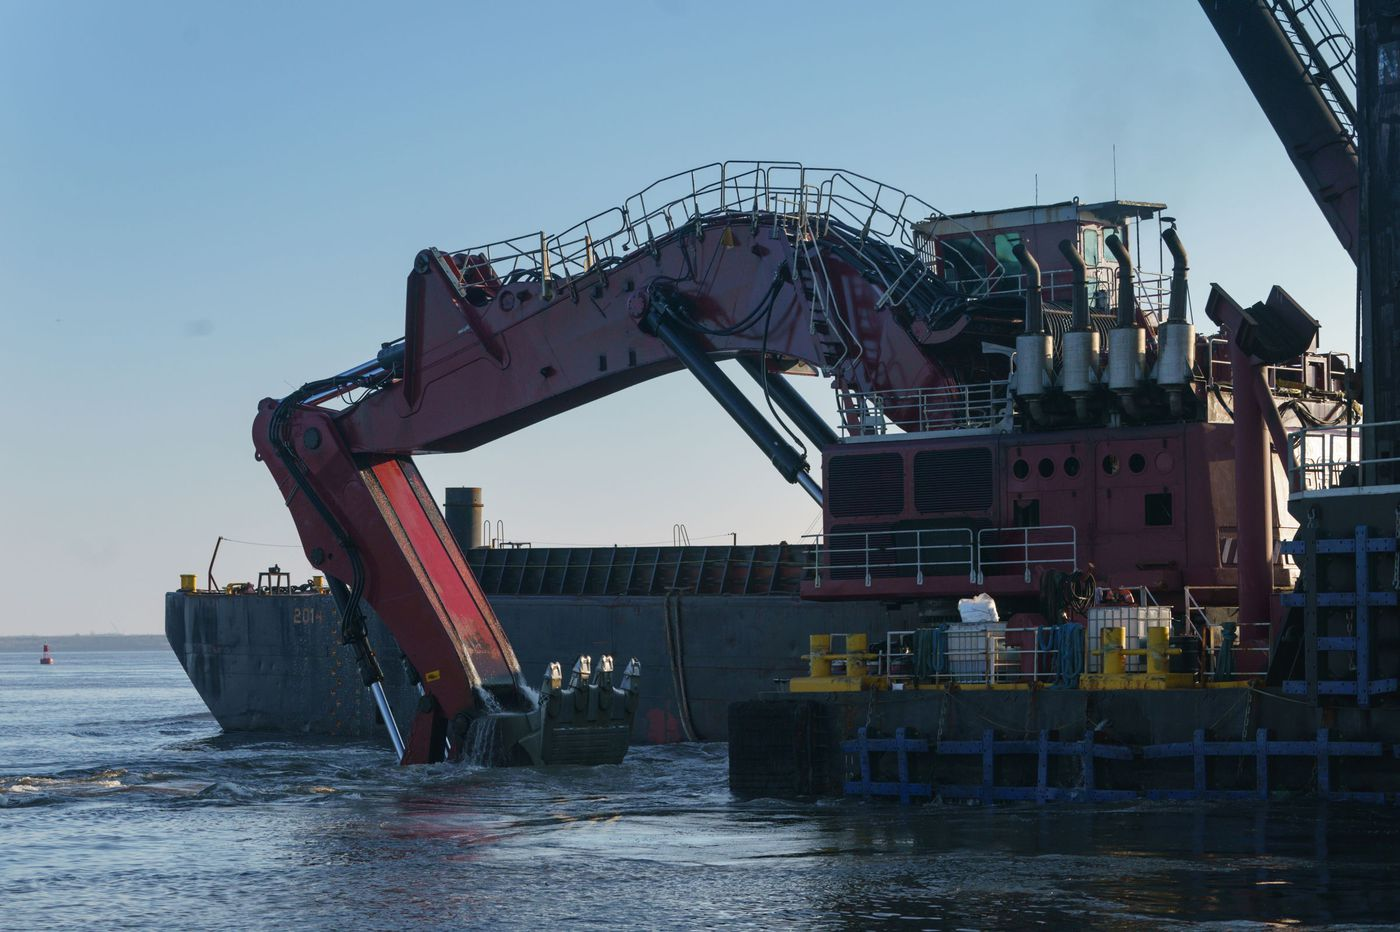 Our wrap up of the weirdest stories that happened in Philadelphia, Delaware dredging project nears completion | Morning Newsletter